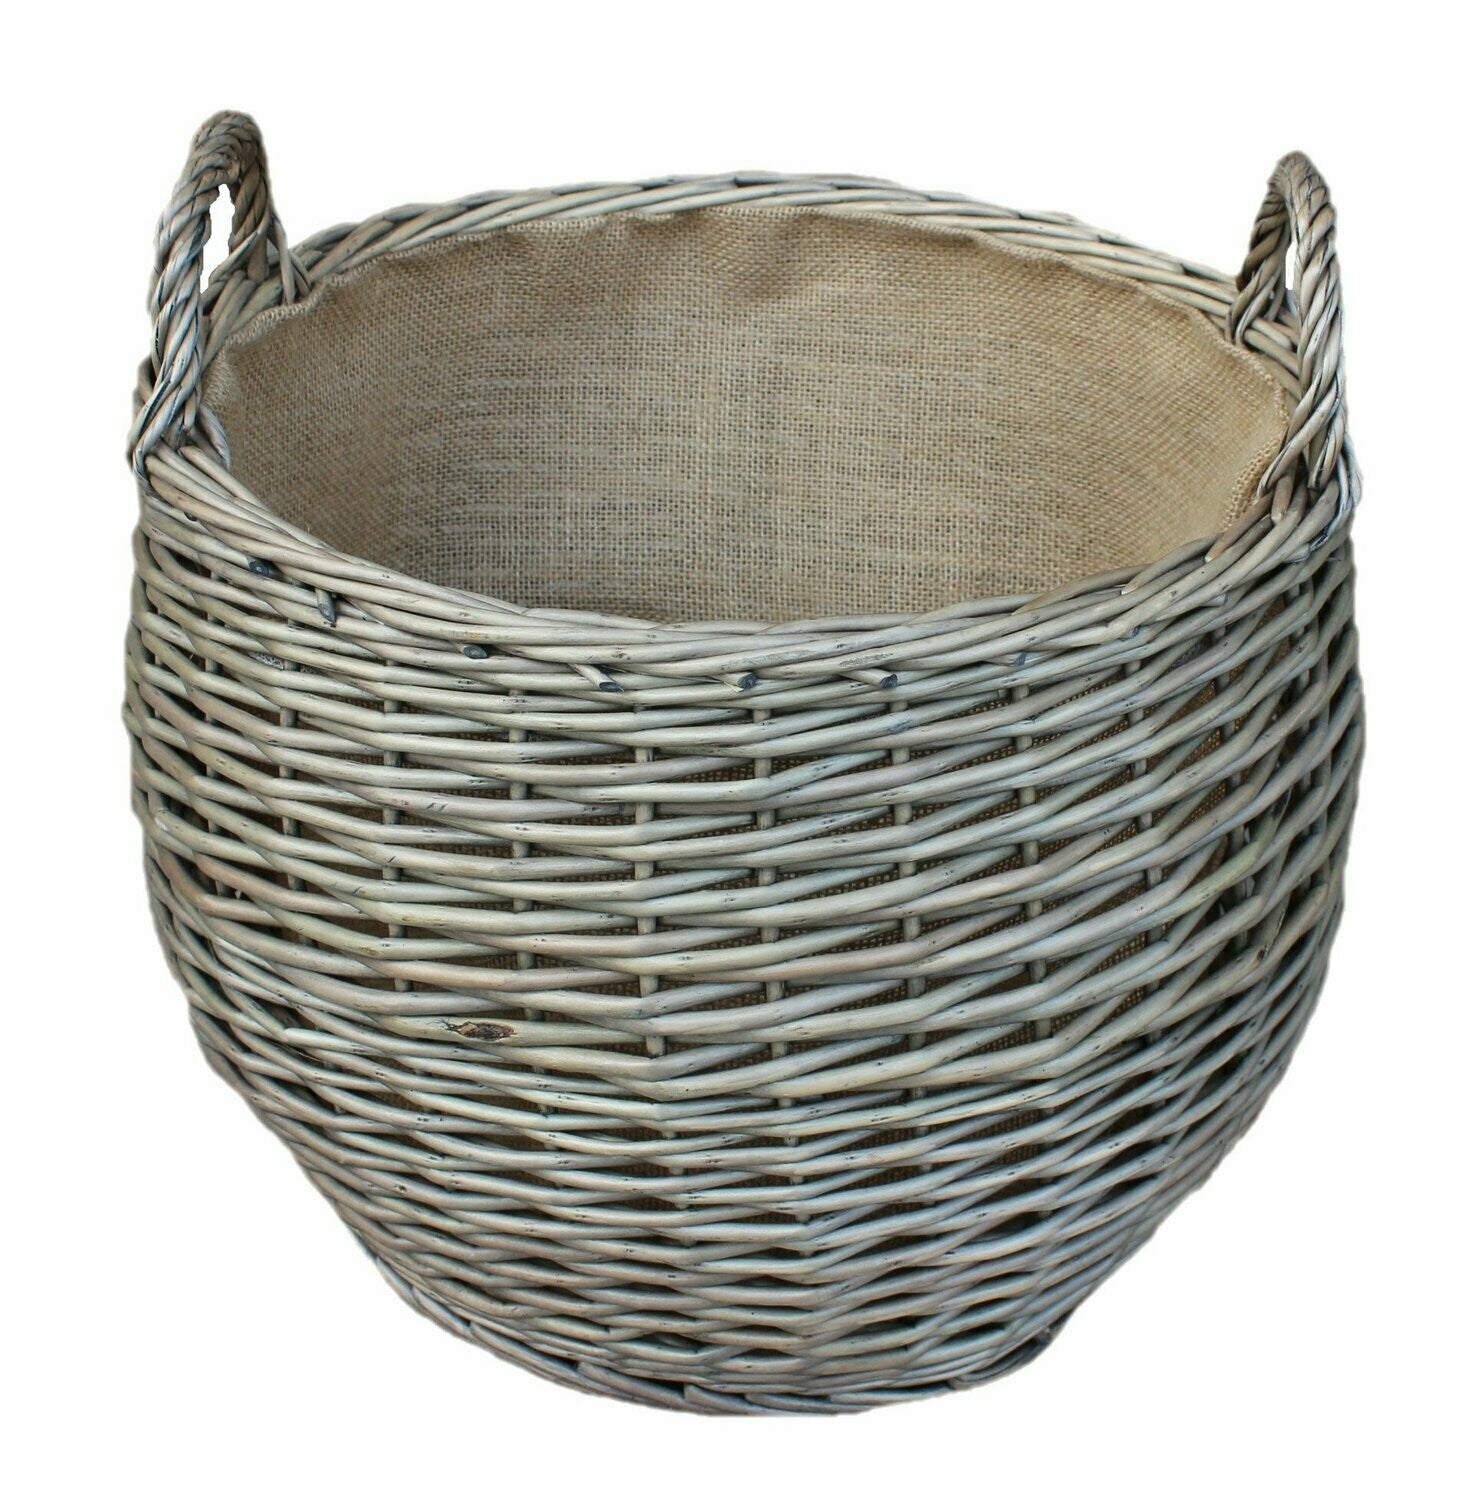 Large lined wicker basket